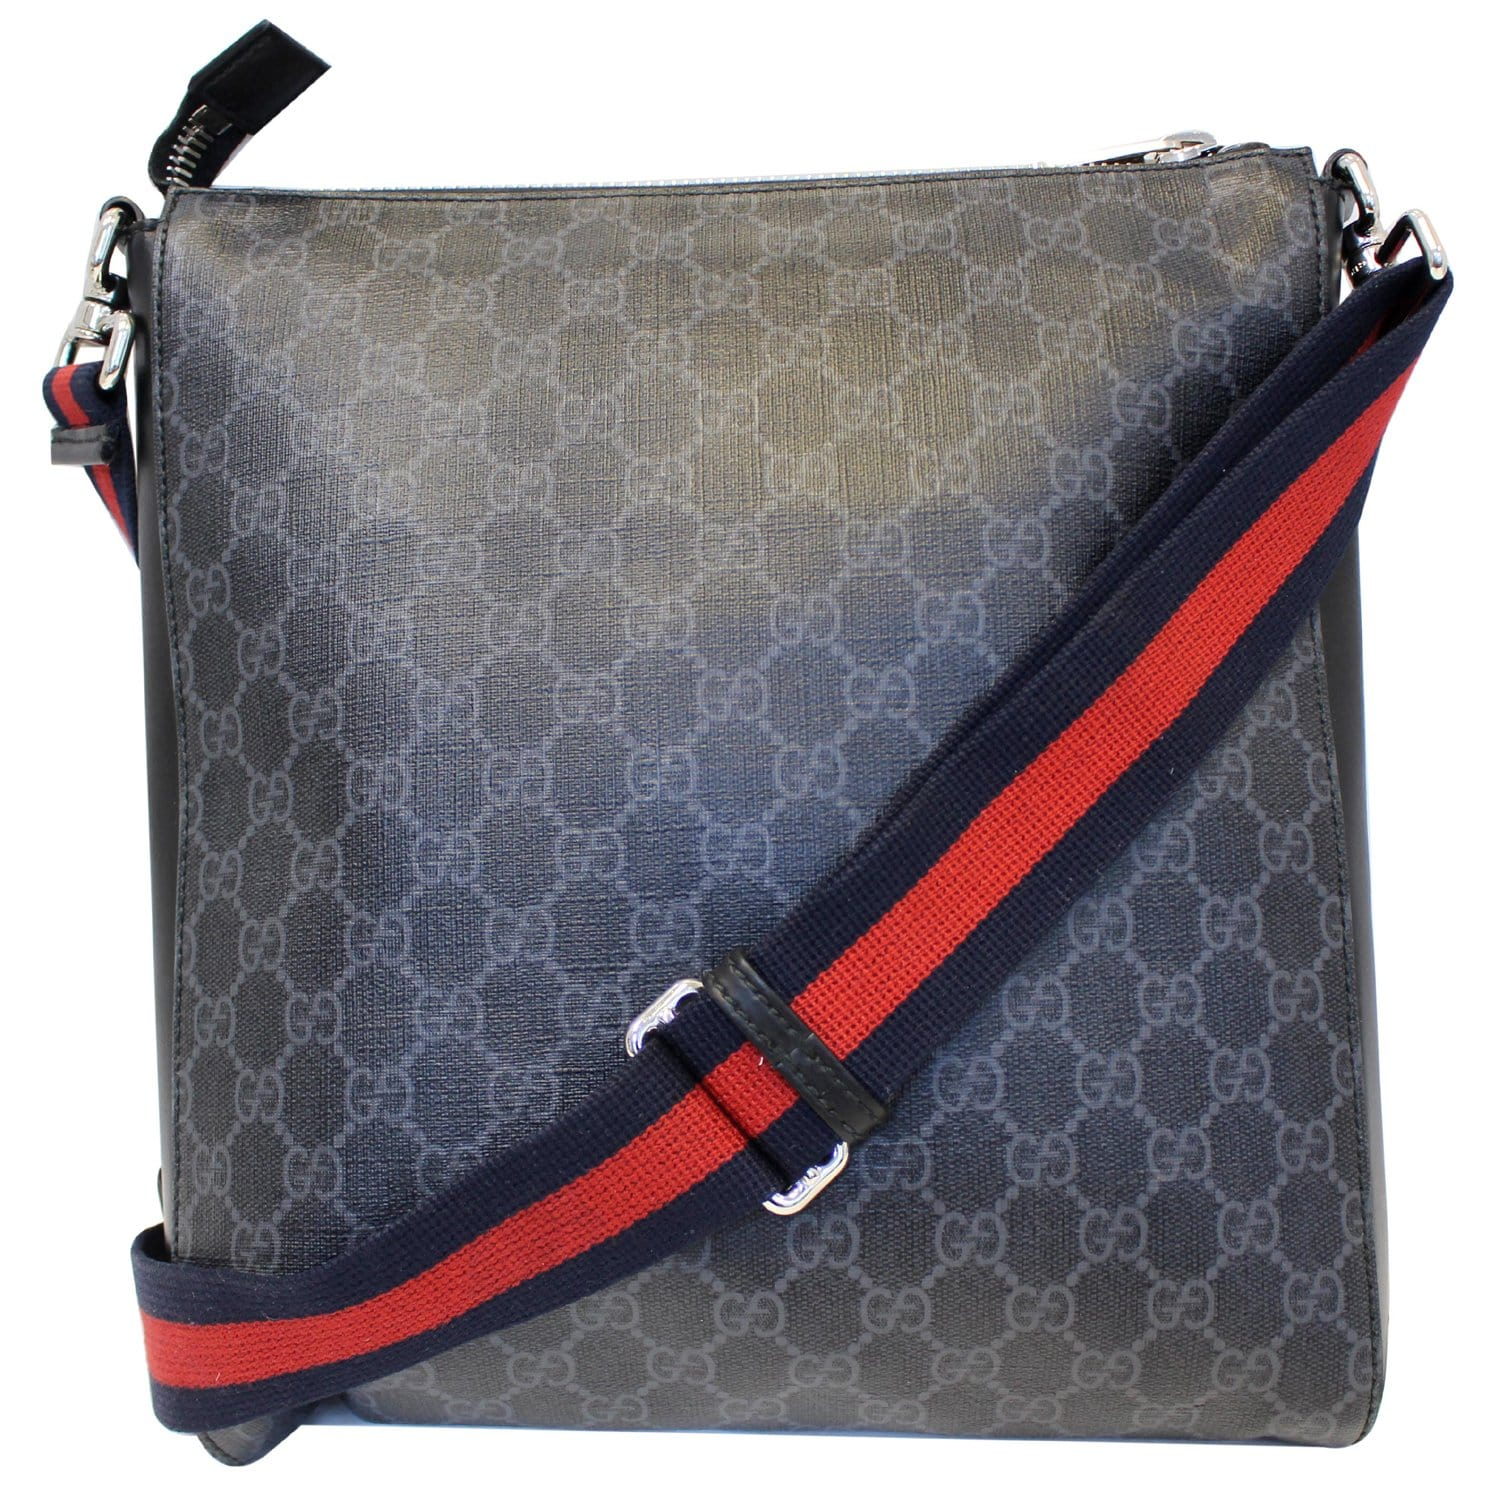 fe494ba61efa GUCCI Night Courrier GG Supreme Messenger Crossbody Bag Black/Grey-US